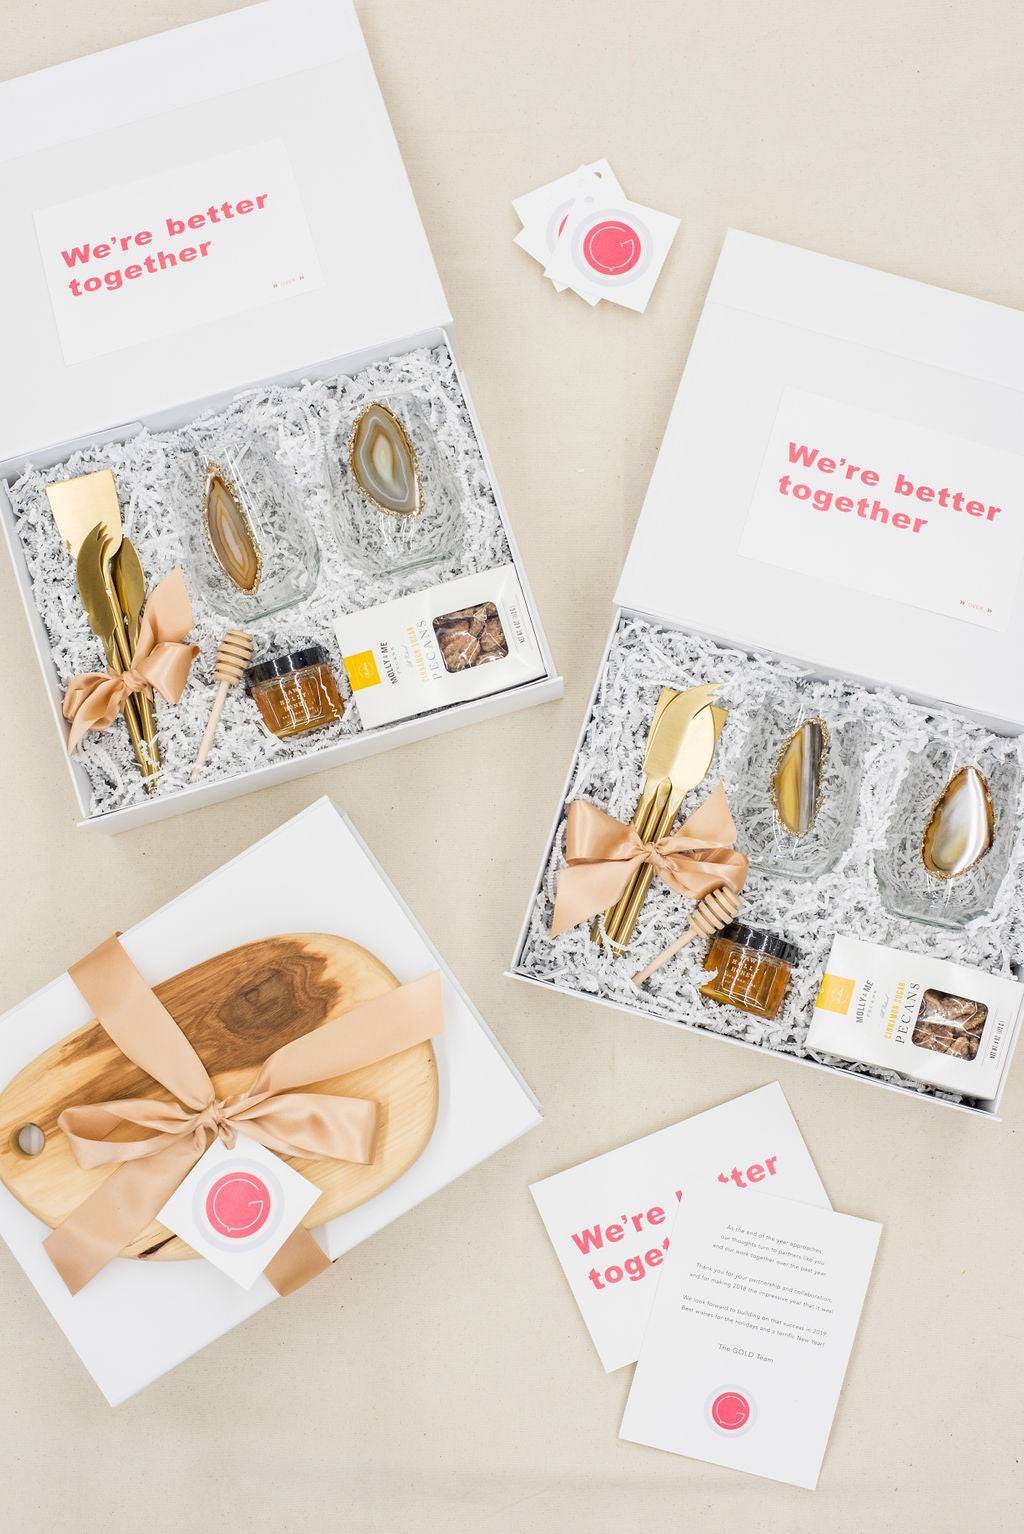 PR firm's corporate holiday client gift boxes by Marigold & Grey